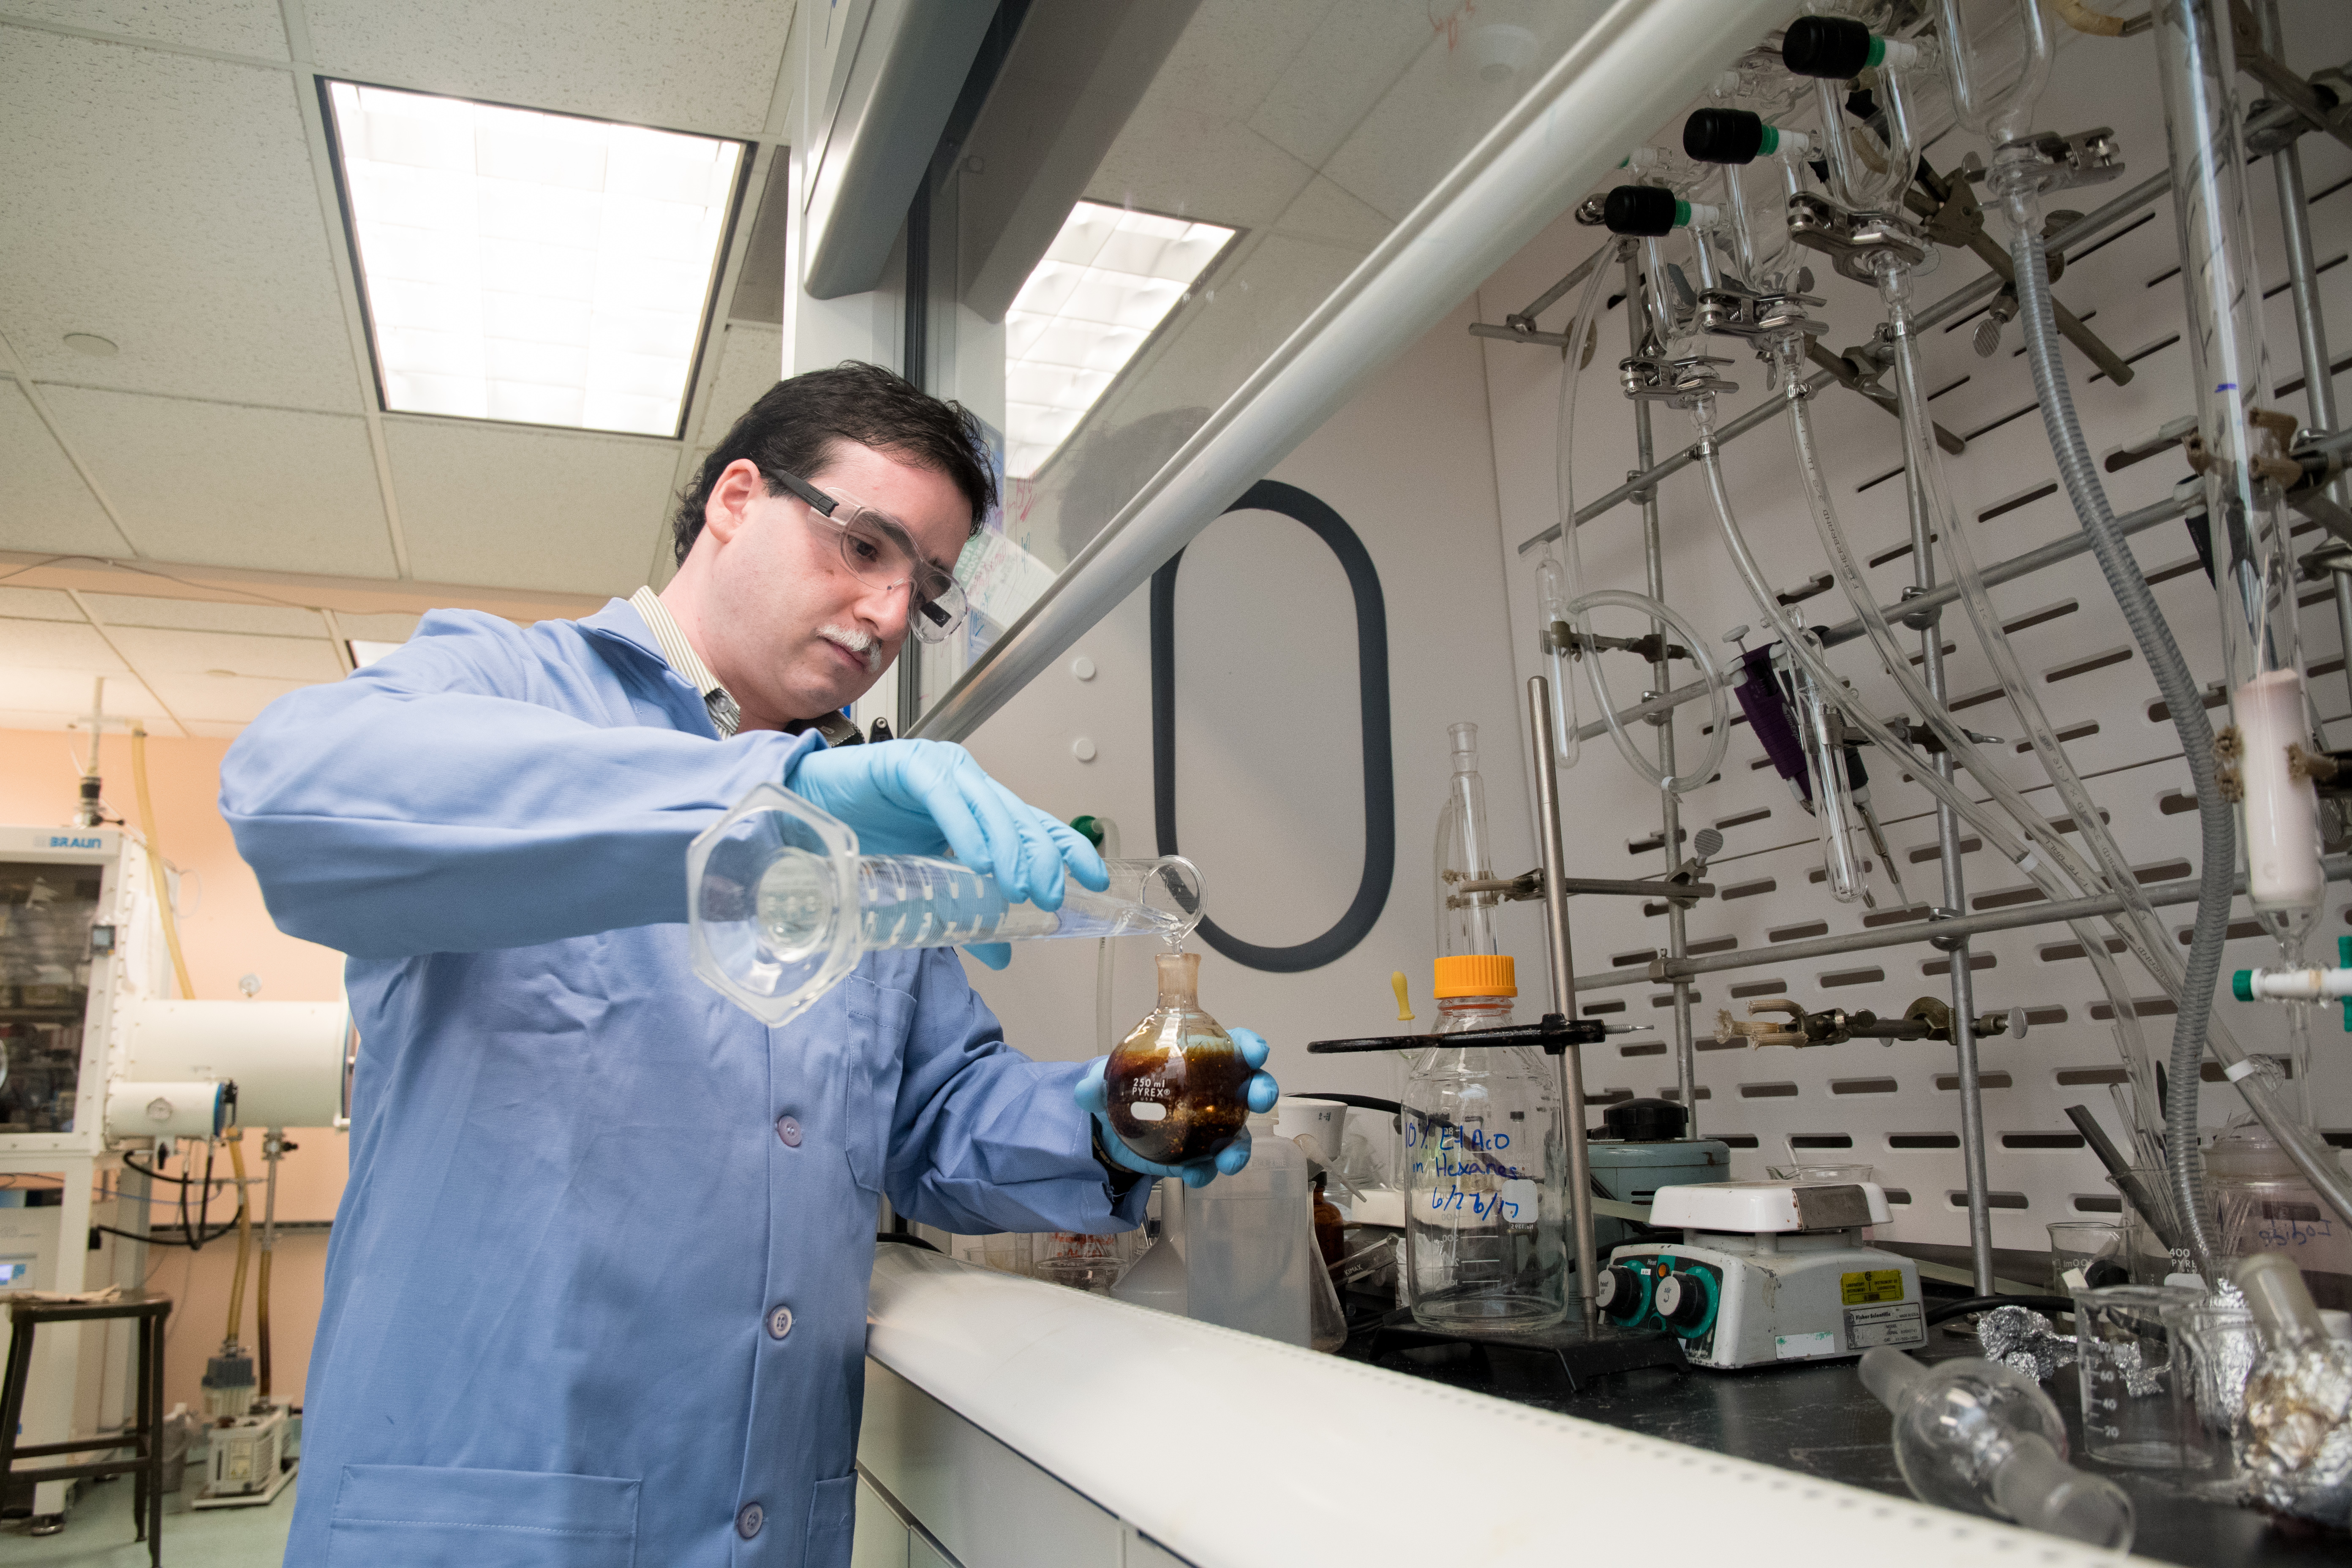 Assistant chemistry professor Shubham Vyas works in his lab at Colorado School of Mines.